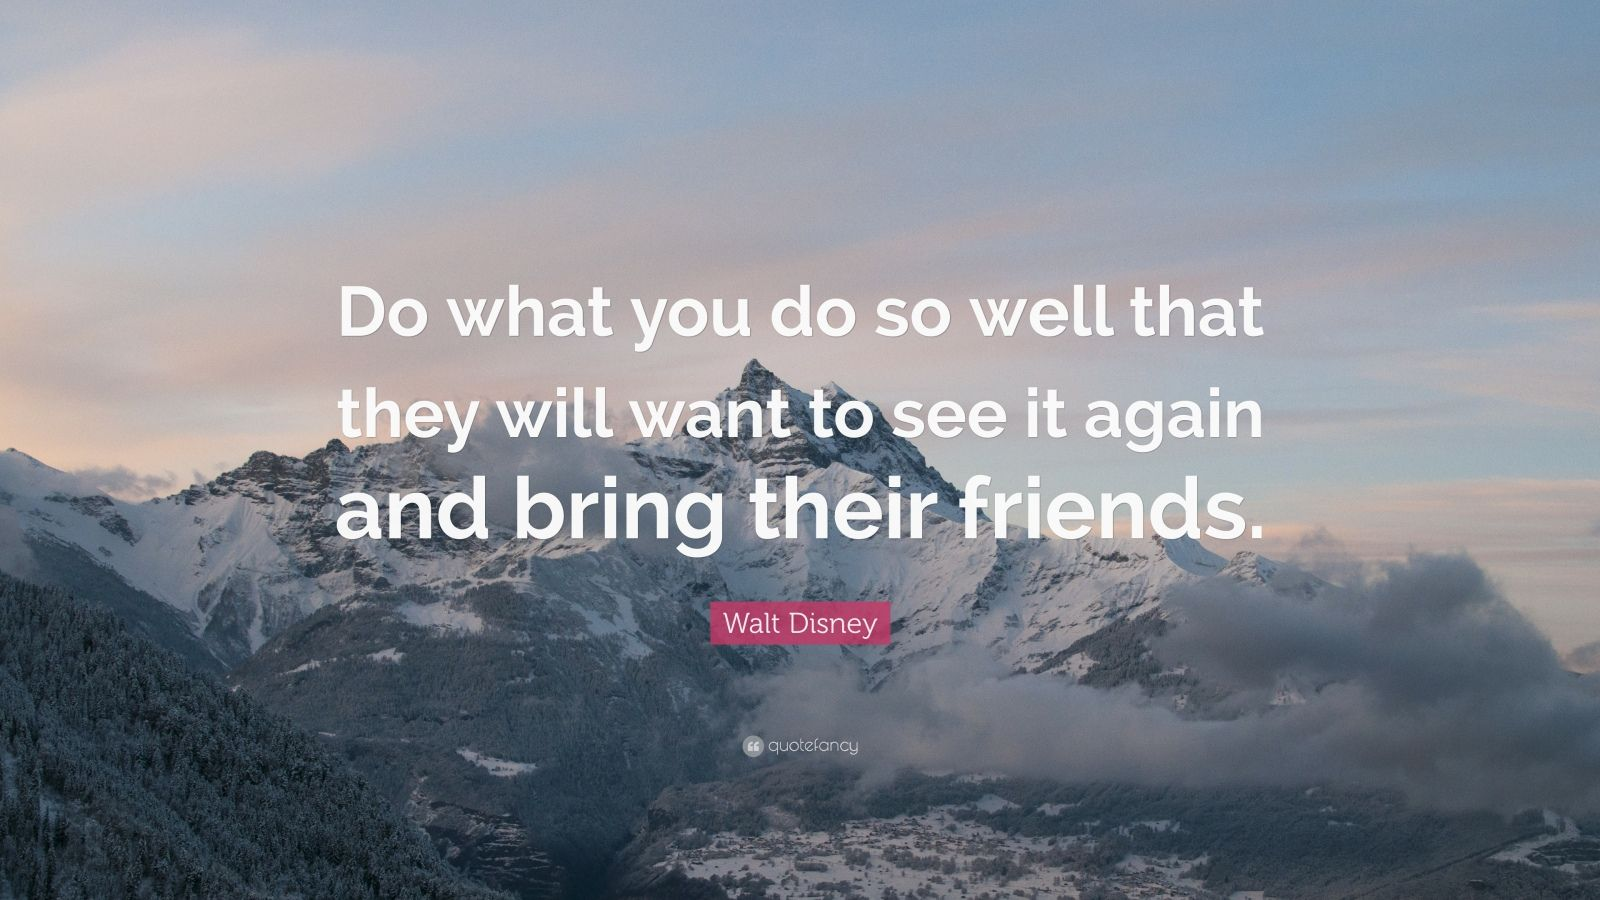 """Walt Disney Quote: """"Do what you do so well that they will want to see it again and bring their friends."""""""